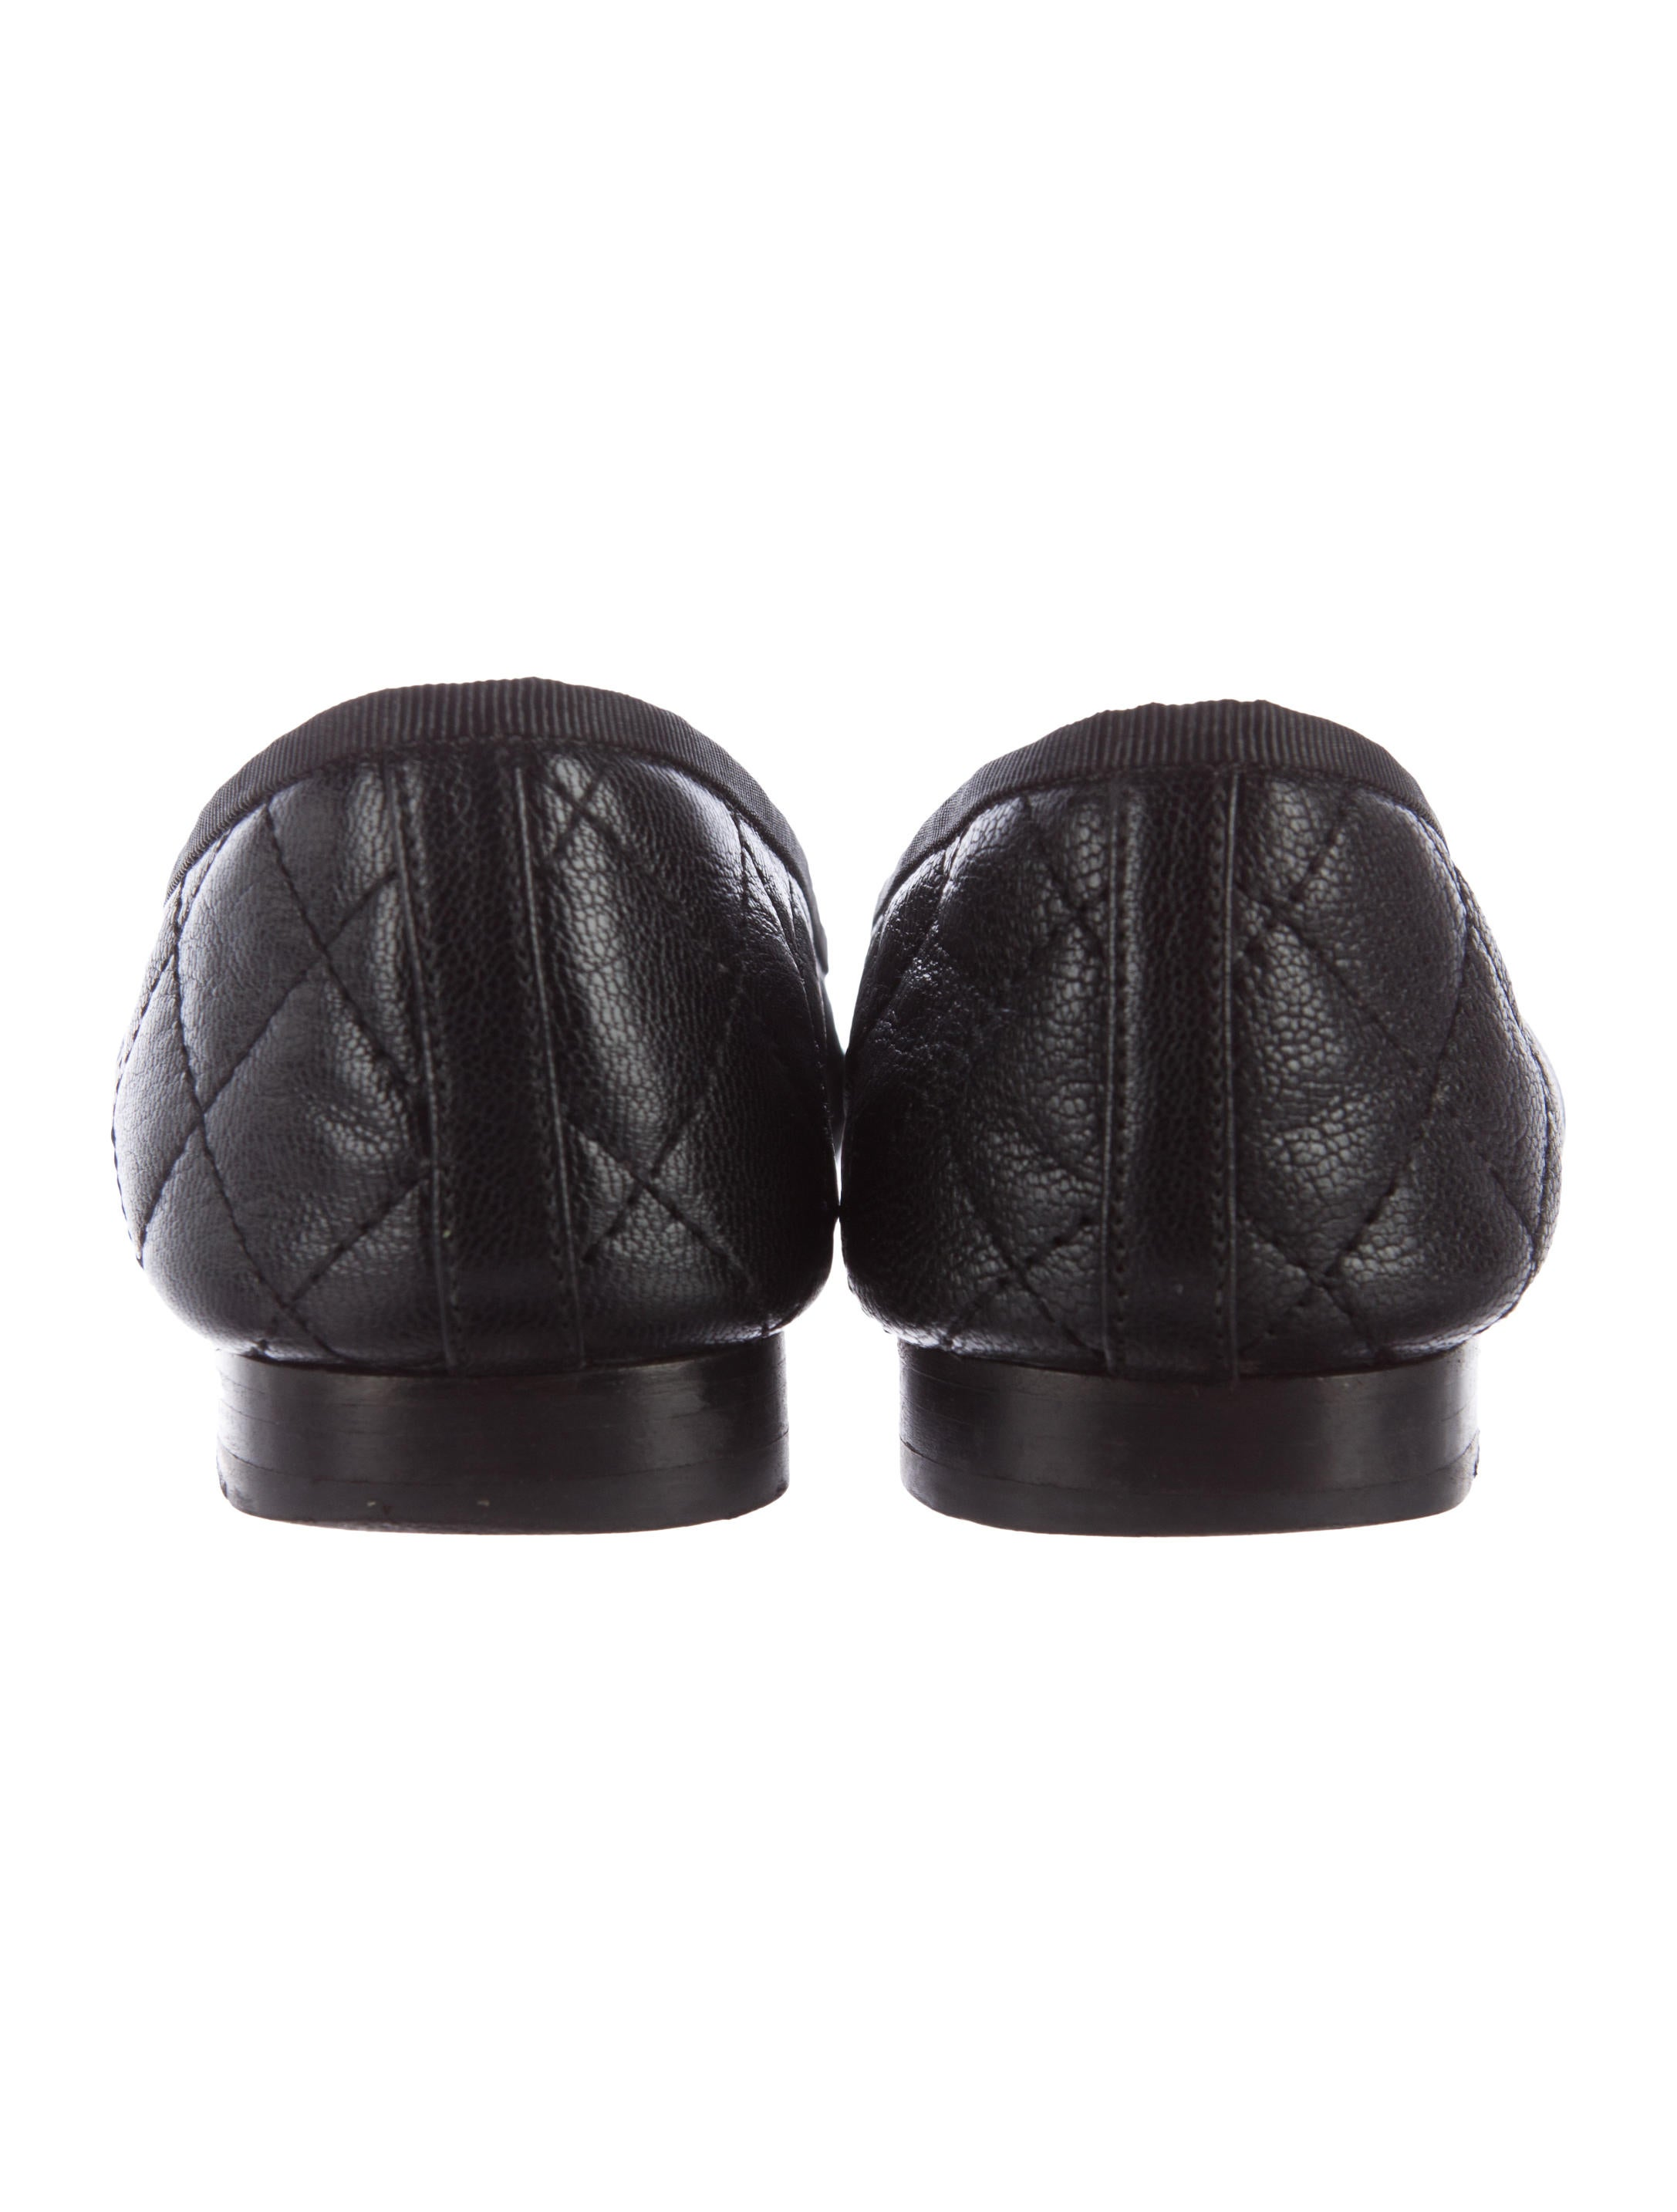 Chanel Cc Quilted Leather Ballet Flats Shoes Cha178184